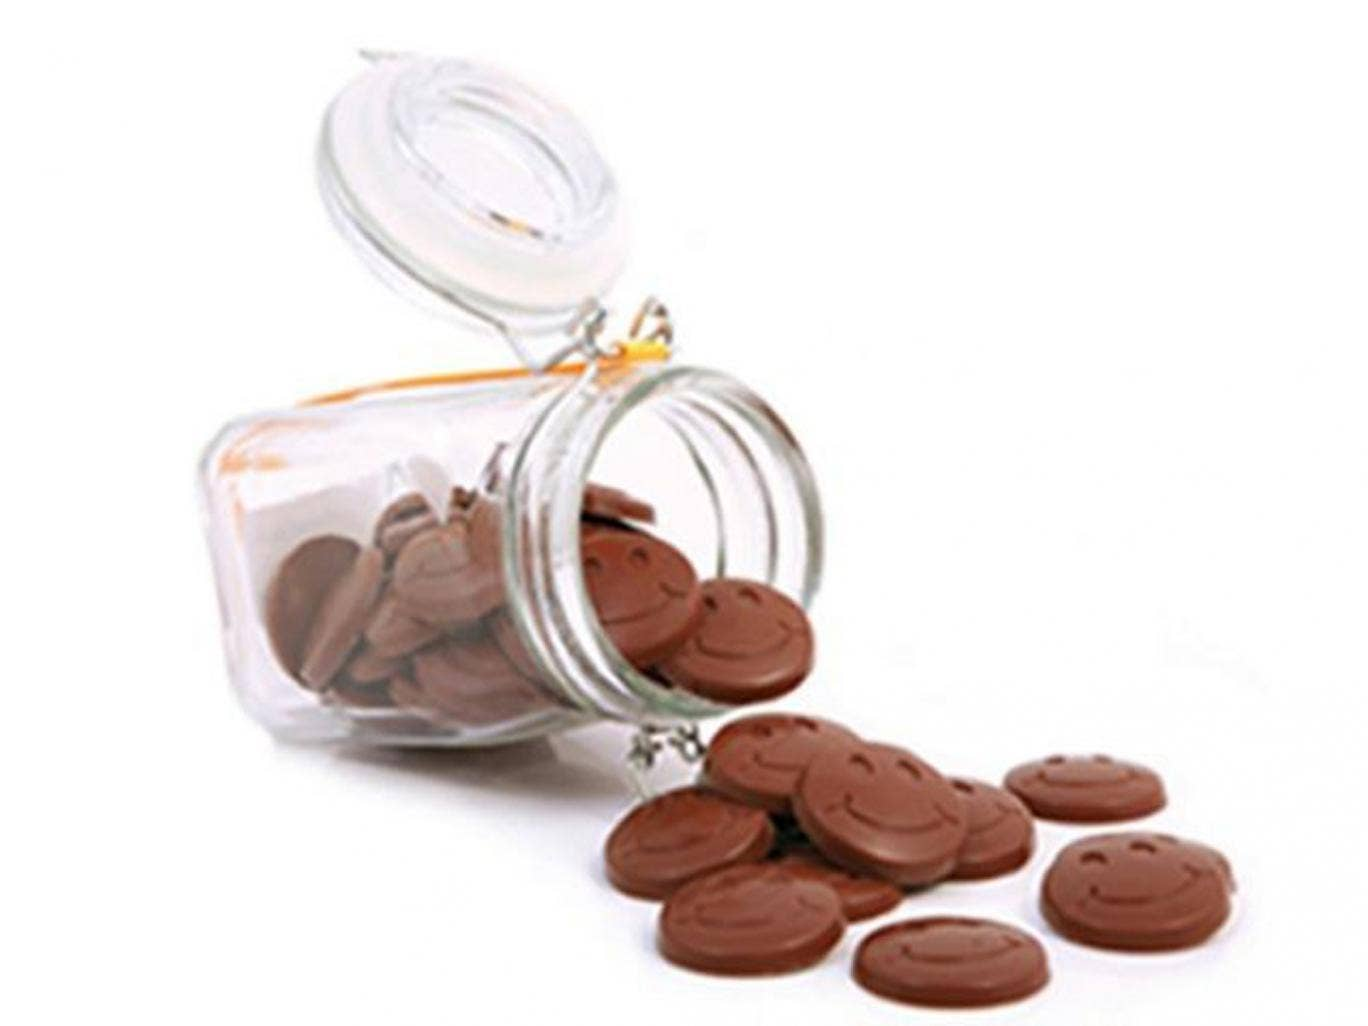 Thorntons has recalled its three varieties of its 'Smiles' jars after loose pieces of glass were found amongst the chocolate contents